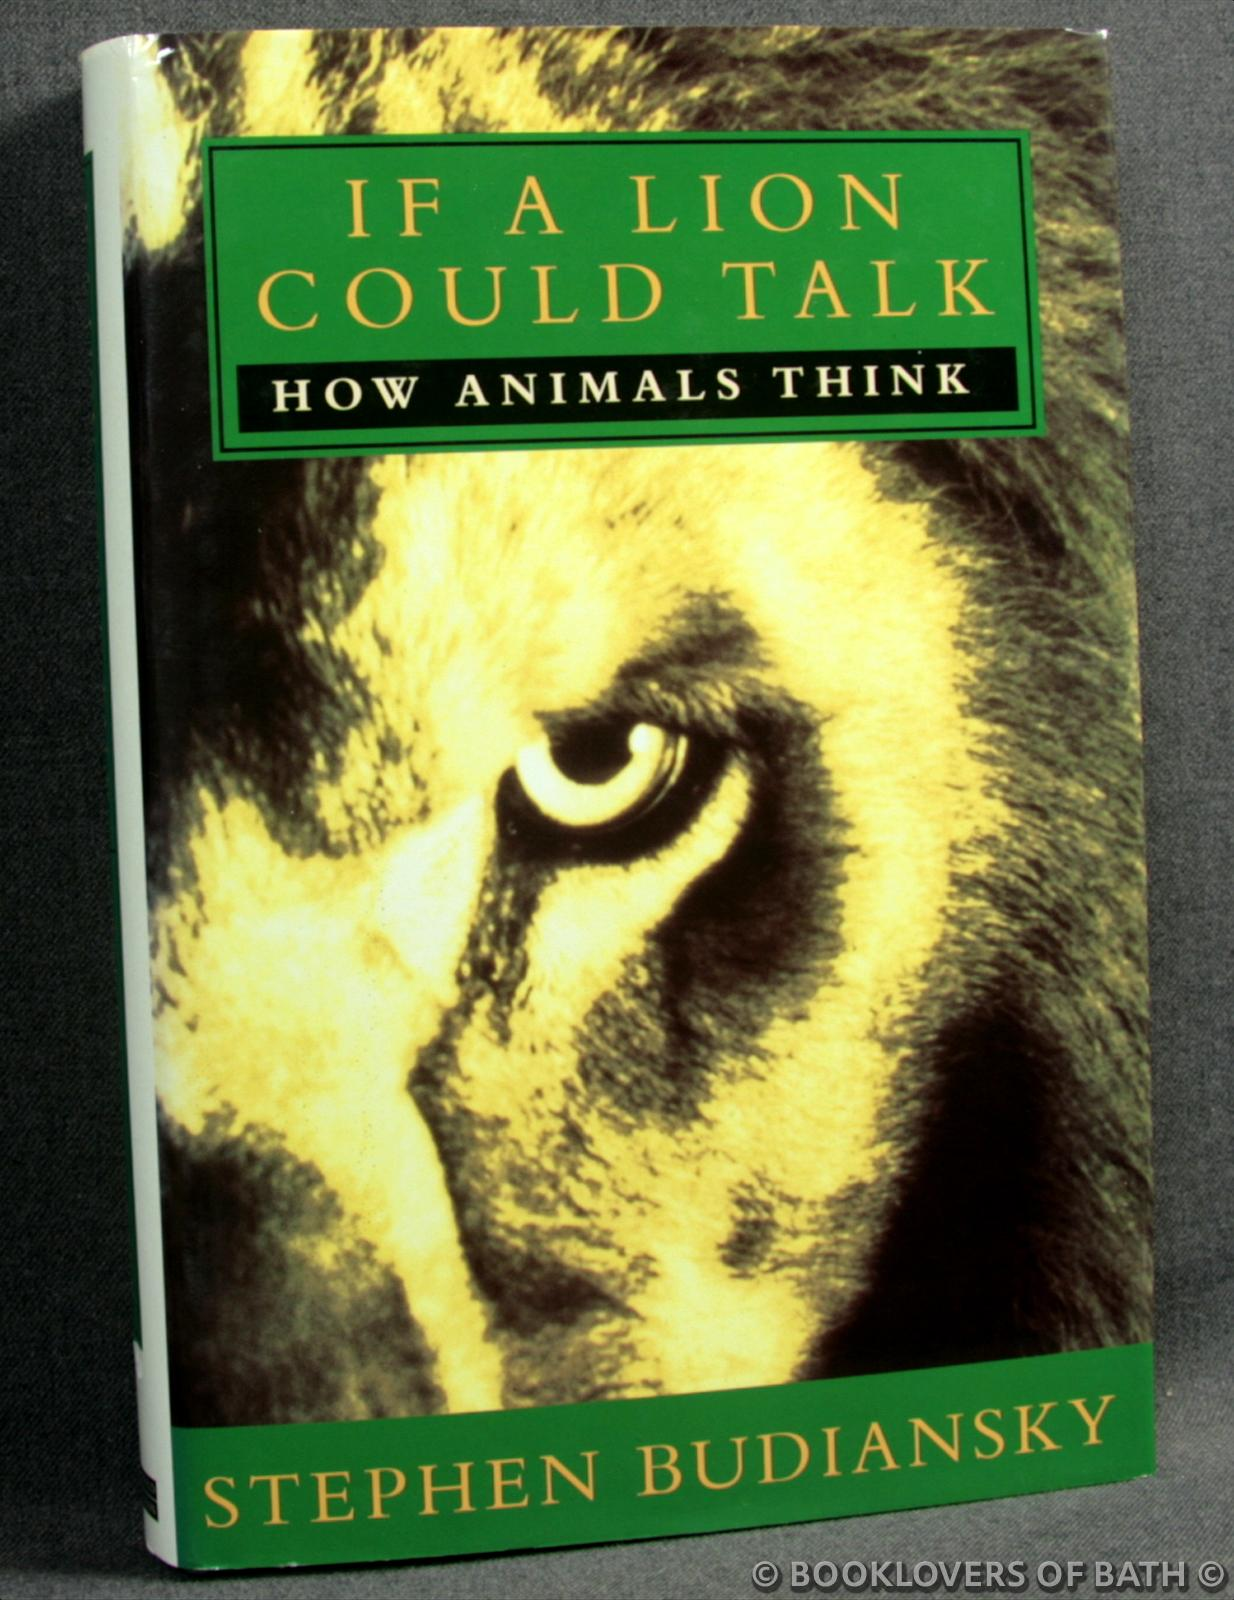 If a Lion Could Talk: How Animals Think - Stephen Budiansky